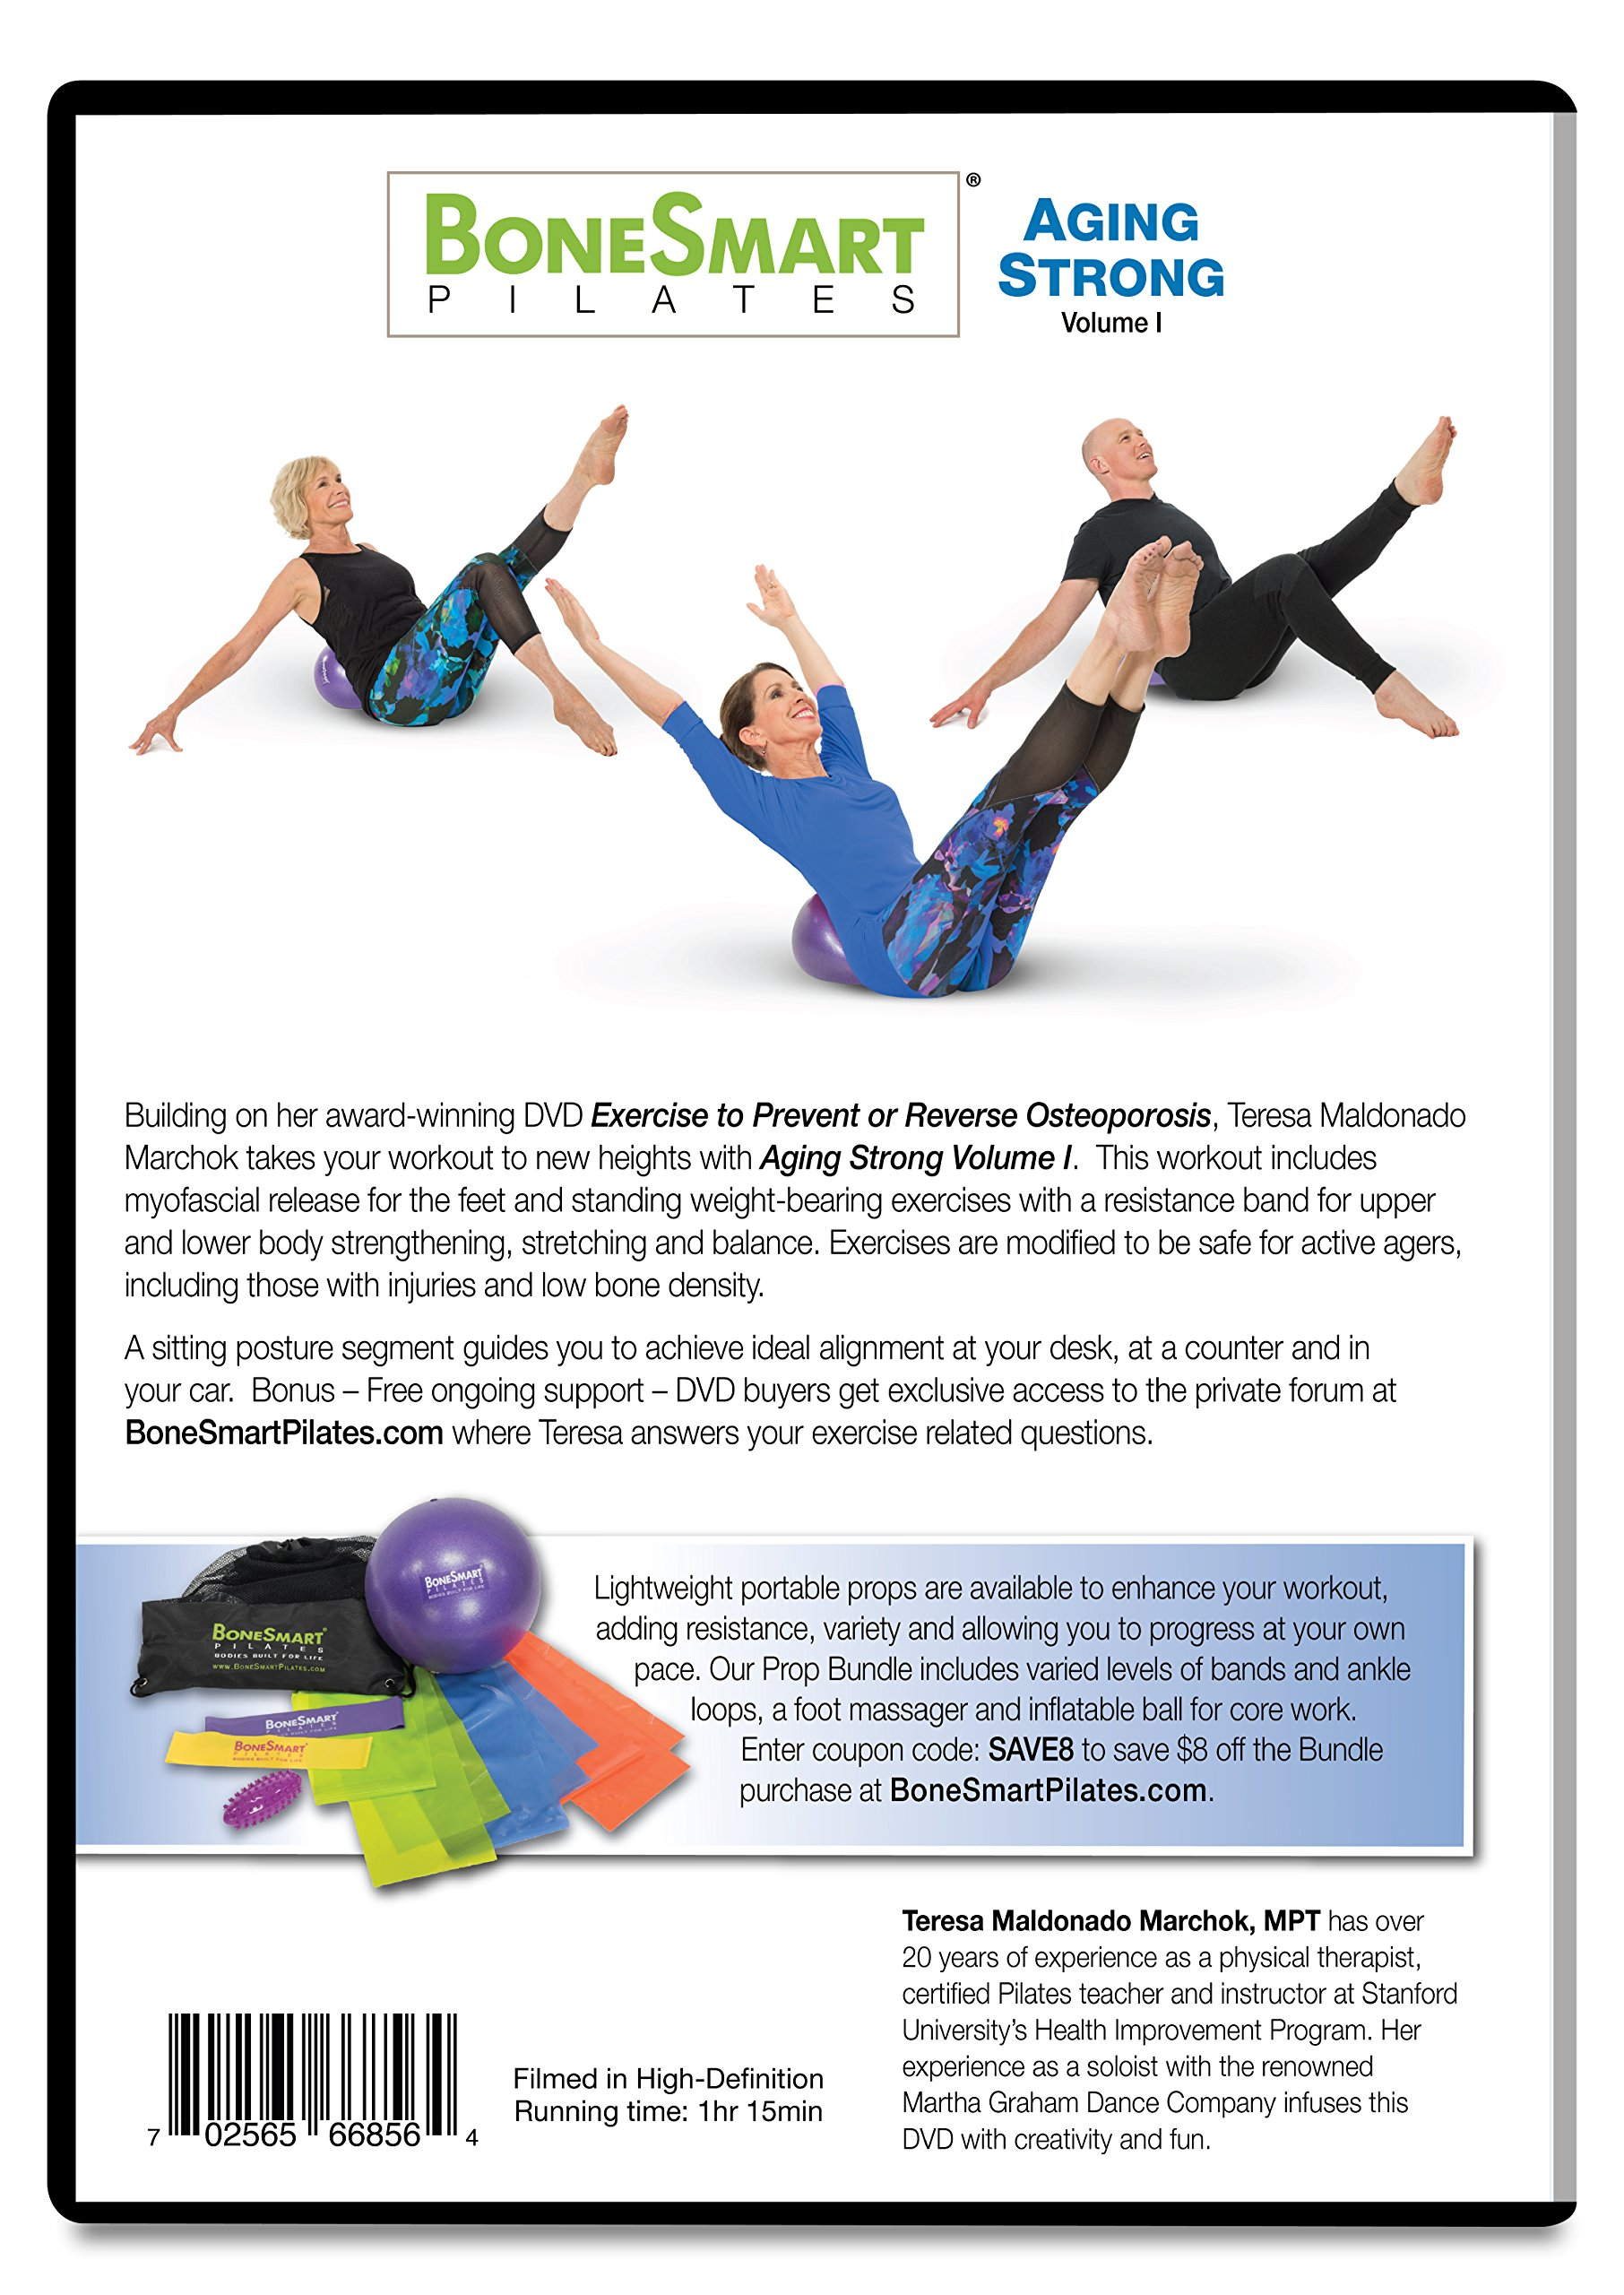 BoneSmart Pilates AGING STRONG DVD Vol I with Enhanced Props Bundle - Newly Released! - Exercise to Build Bone, Avoid Injury, Age Strong by BoneSmart Pilates